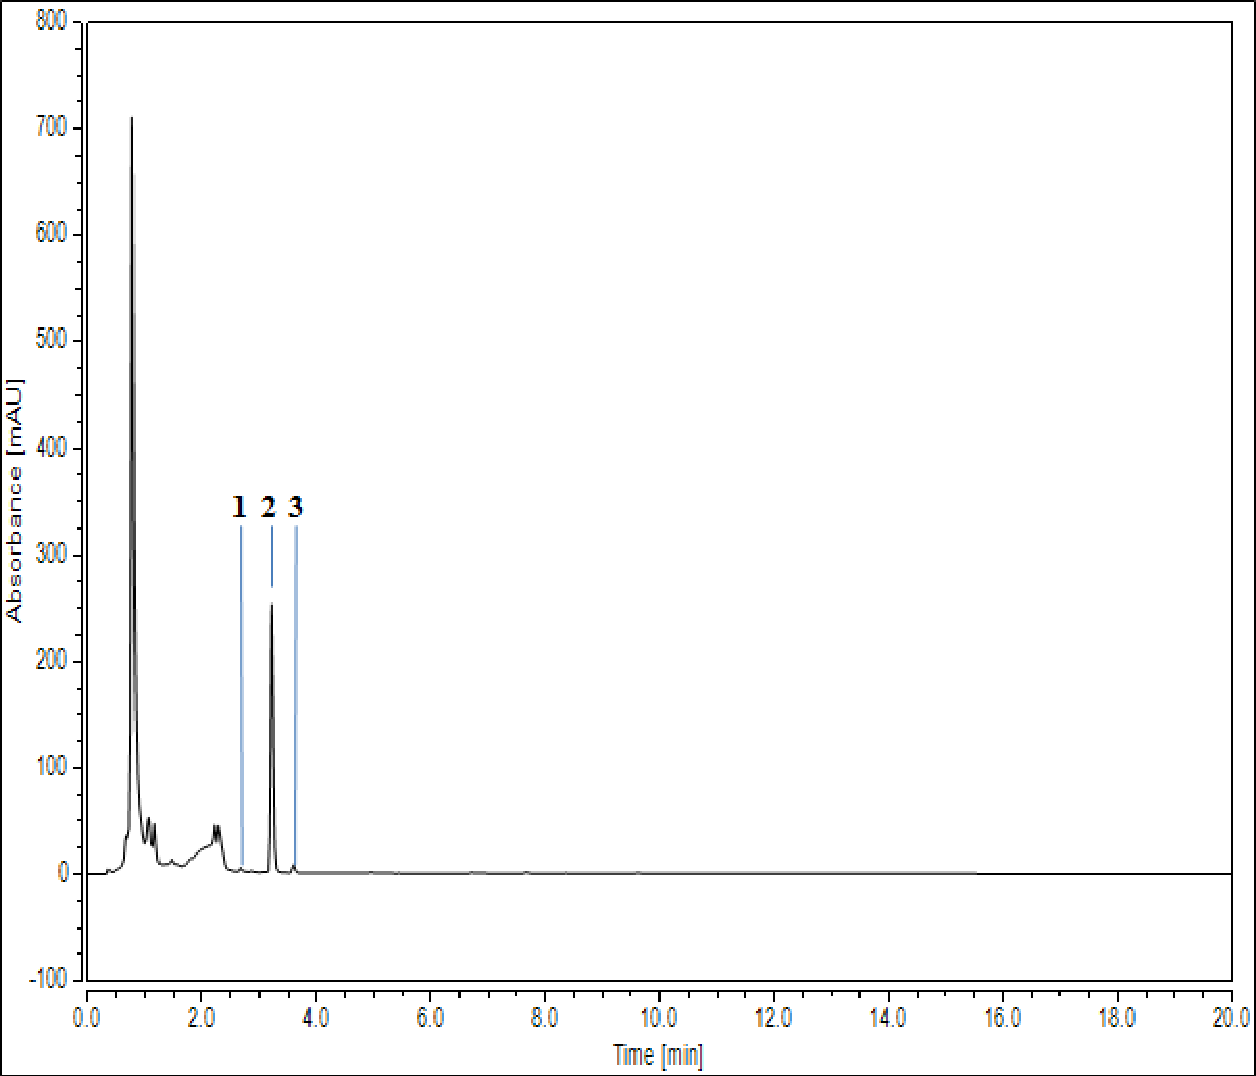 Figure 36: HPLC chromatogram for manuka flower washing solution containing 1.29 µg/mL of DHA. In this chromatogram the PFBHA derivat ive of DHA(1) elutes at 2.6 7 min, excess PFBHA(2) elutes at 3.21 min, and the PFBHA derivative of HA(3) elutes at 3.59 min.